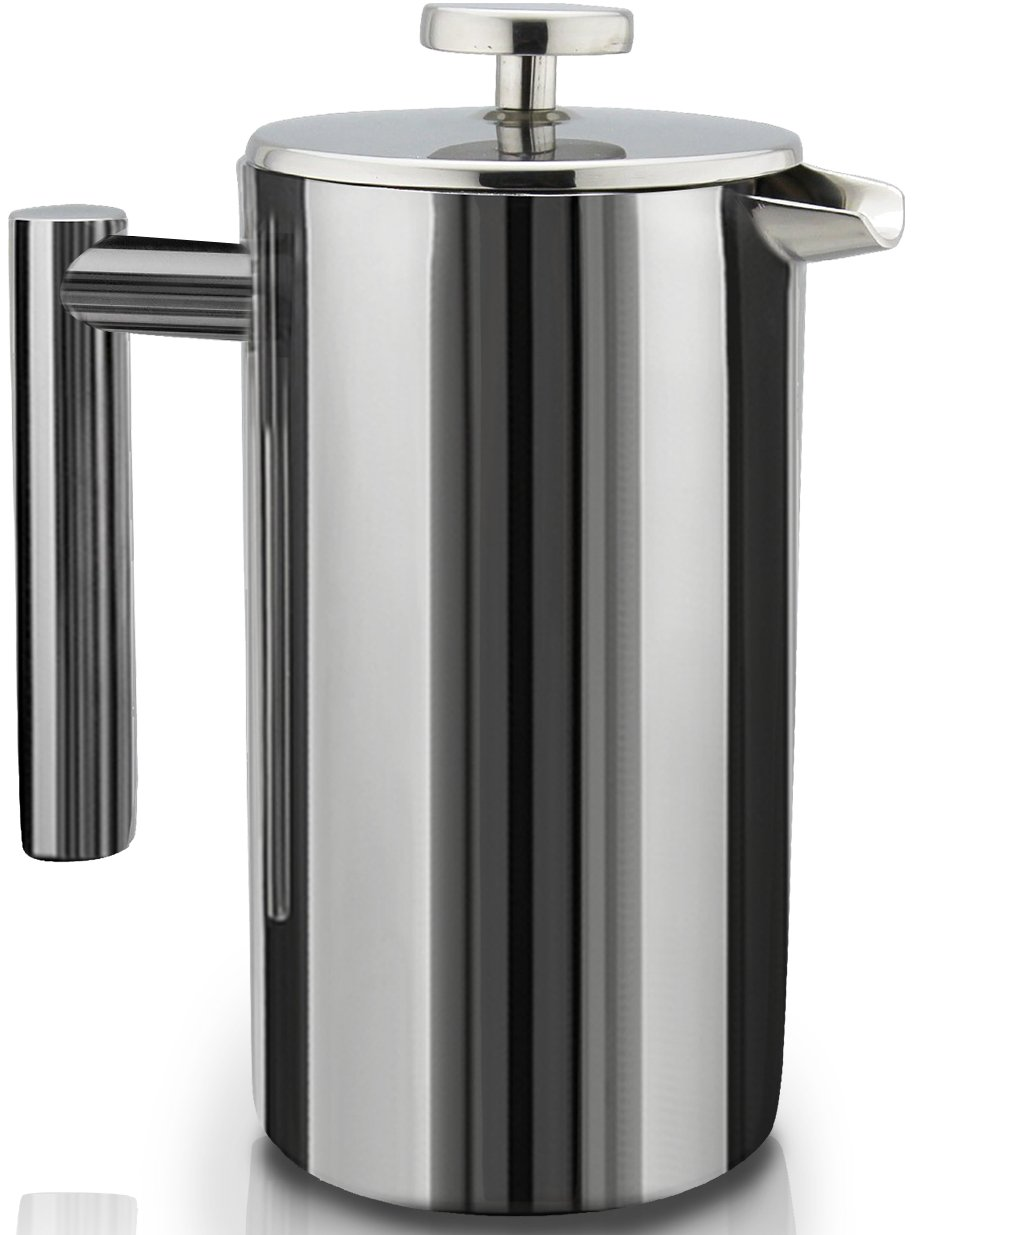 Best French Press Coffee Maker Cooks Illustrated : How To Choose The Best Coffee Press On The Market?